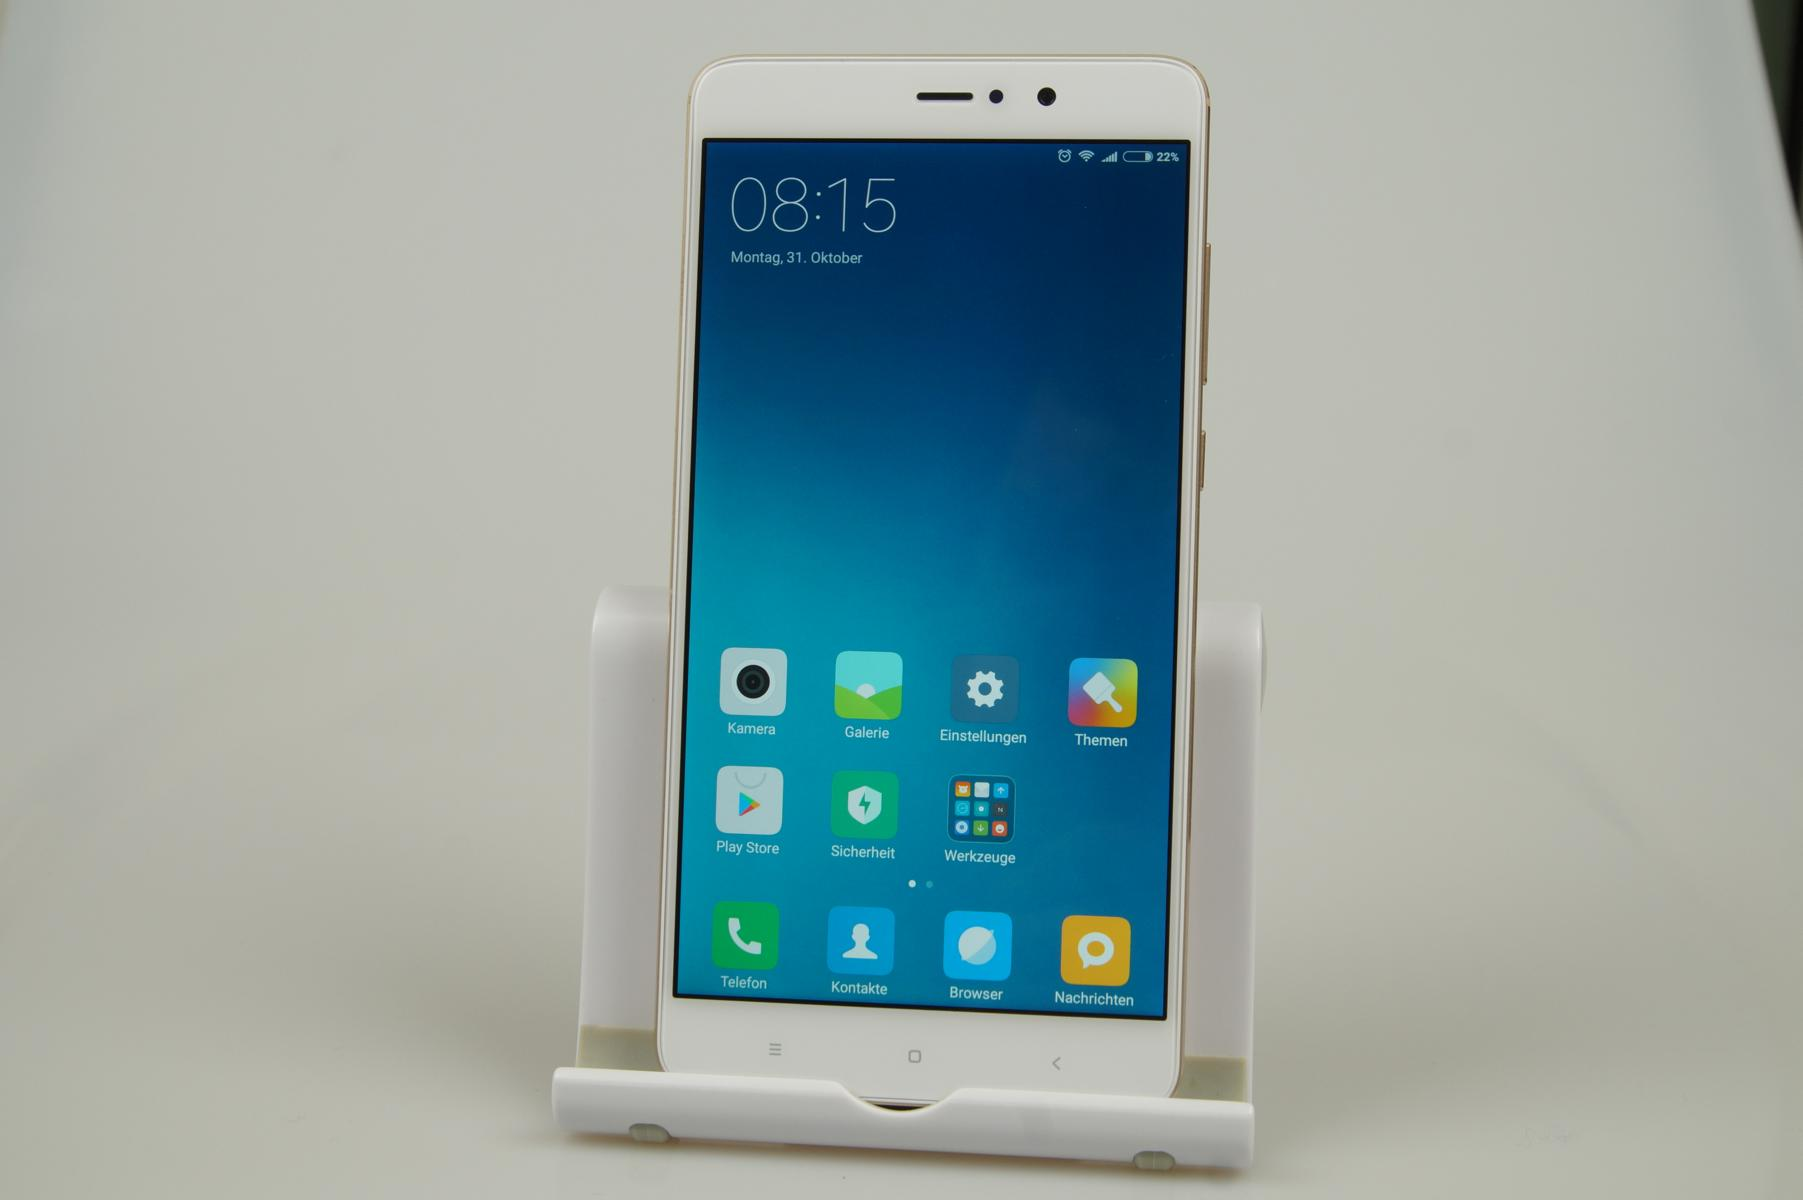 xiaomi-mi5s-plus-display-qualitaet-test-3